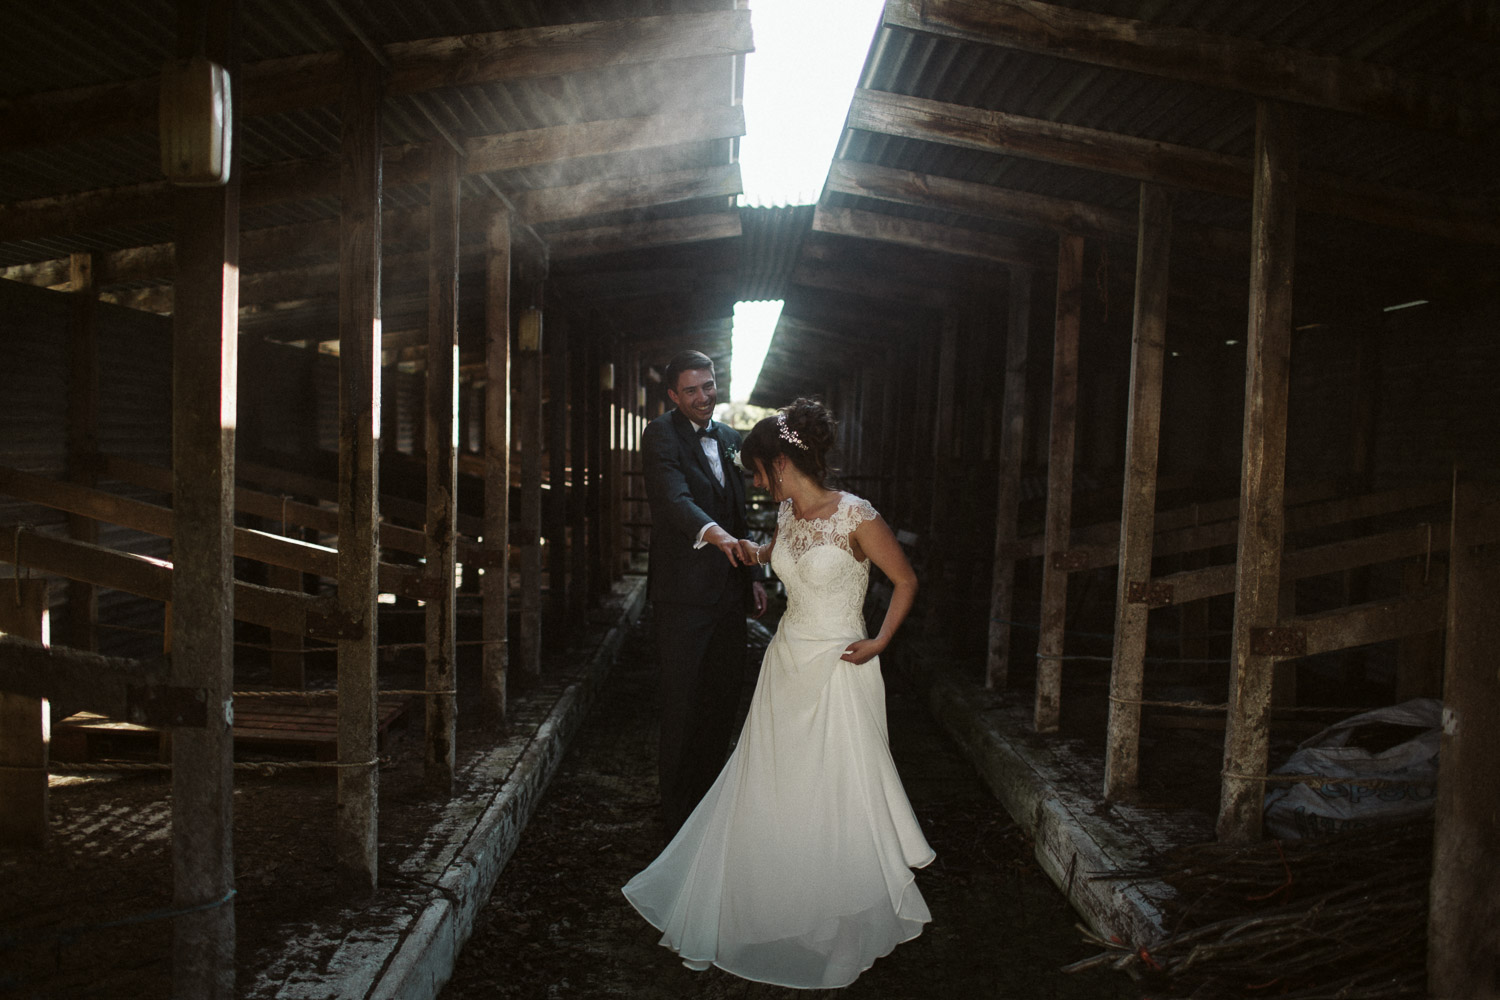 the newlyweds inside a dairy barn